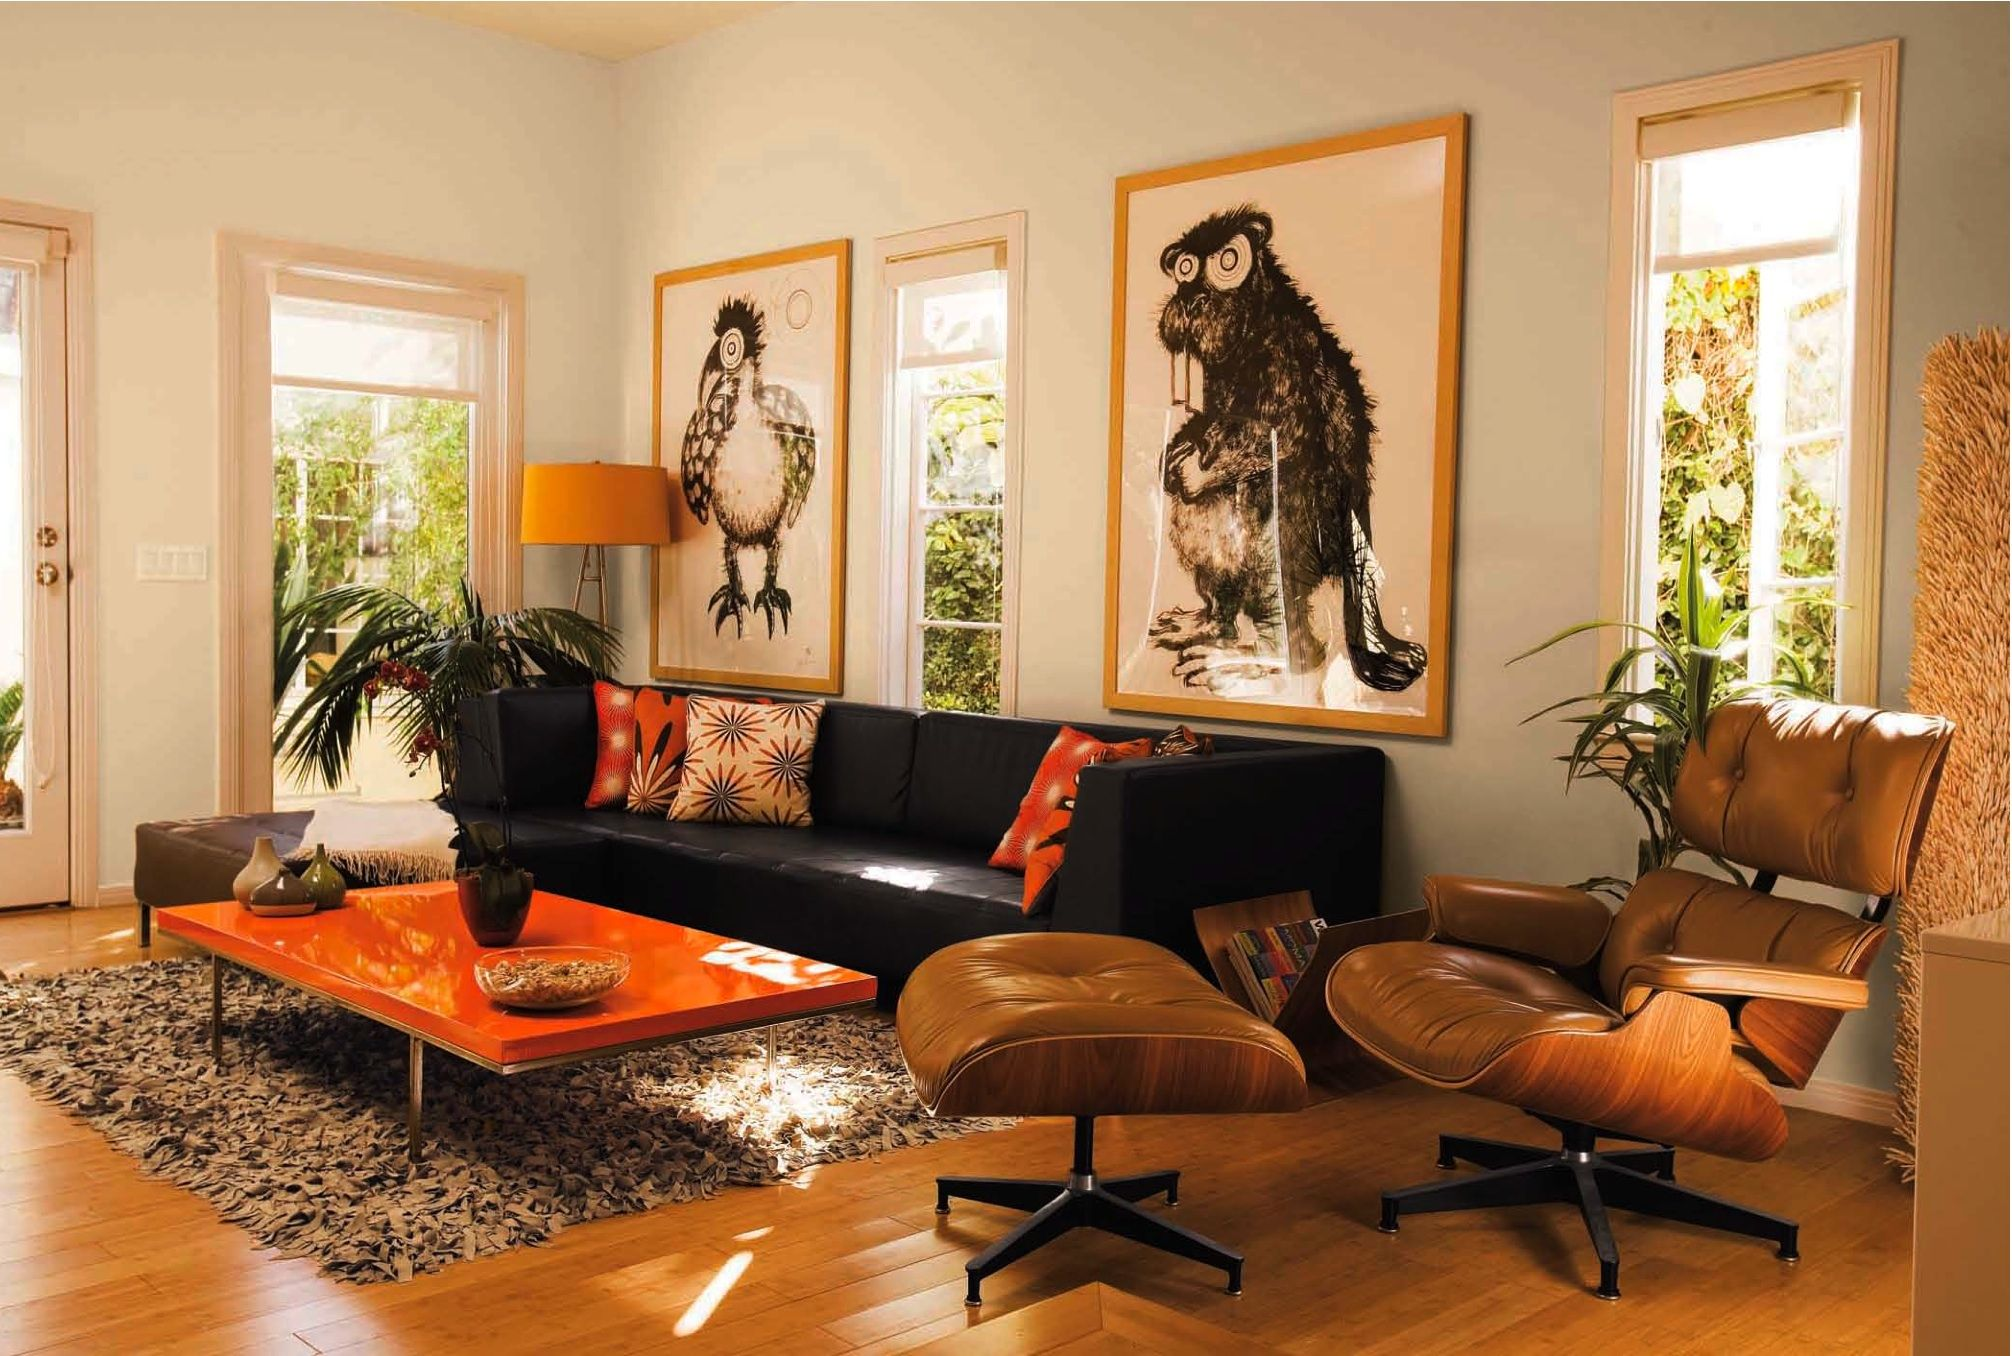 Burnt Orange And Brown Living Room Glamorous Dark Brown Couch Orange Accents Side Chair And Ottaman Lamp And Inspiration